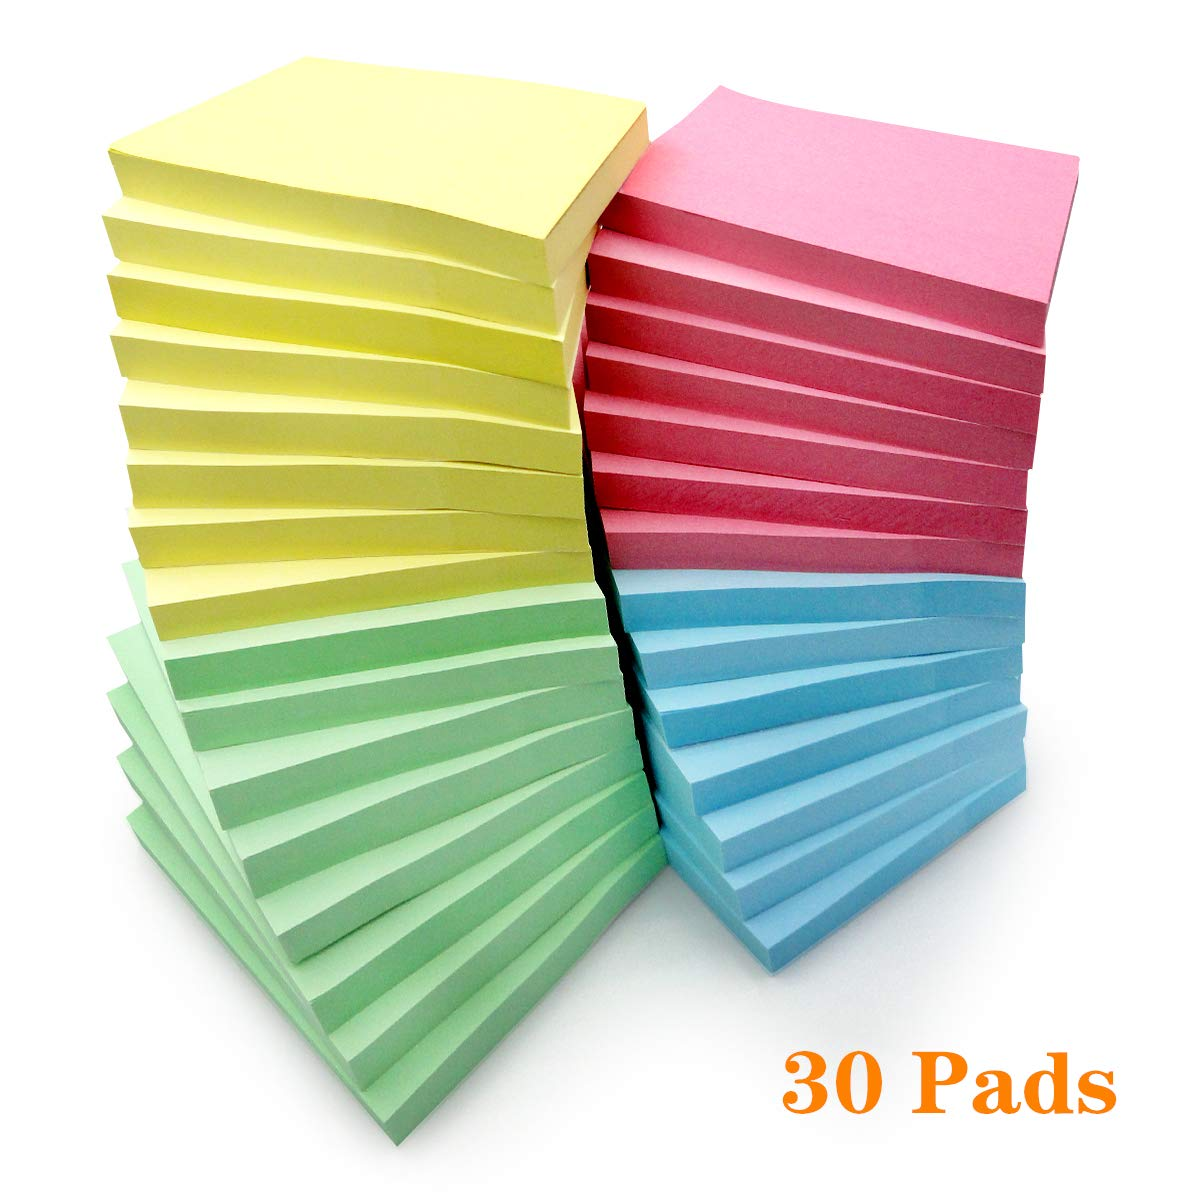 Sticky Notes 3x3 Inches,4 Colored Self-Stick Pads for Office Home School,100 Sheets/Pad,30 Pads